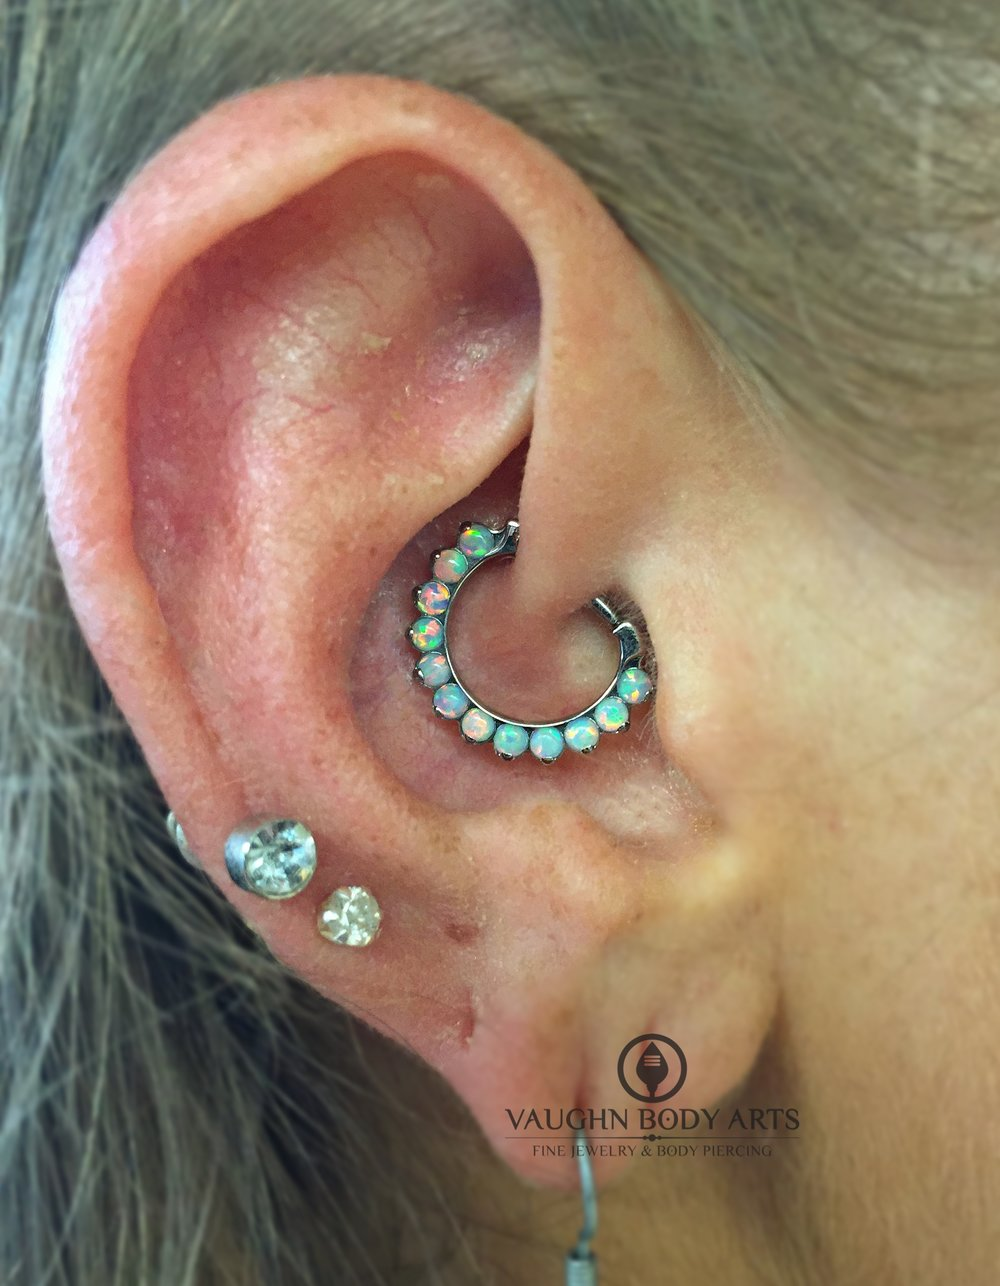 Daith piercing with titanium jewelry from Industrial Strength.